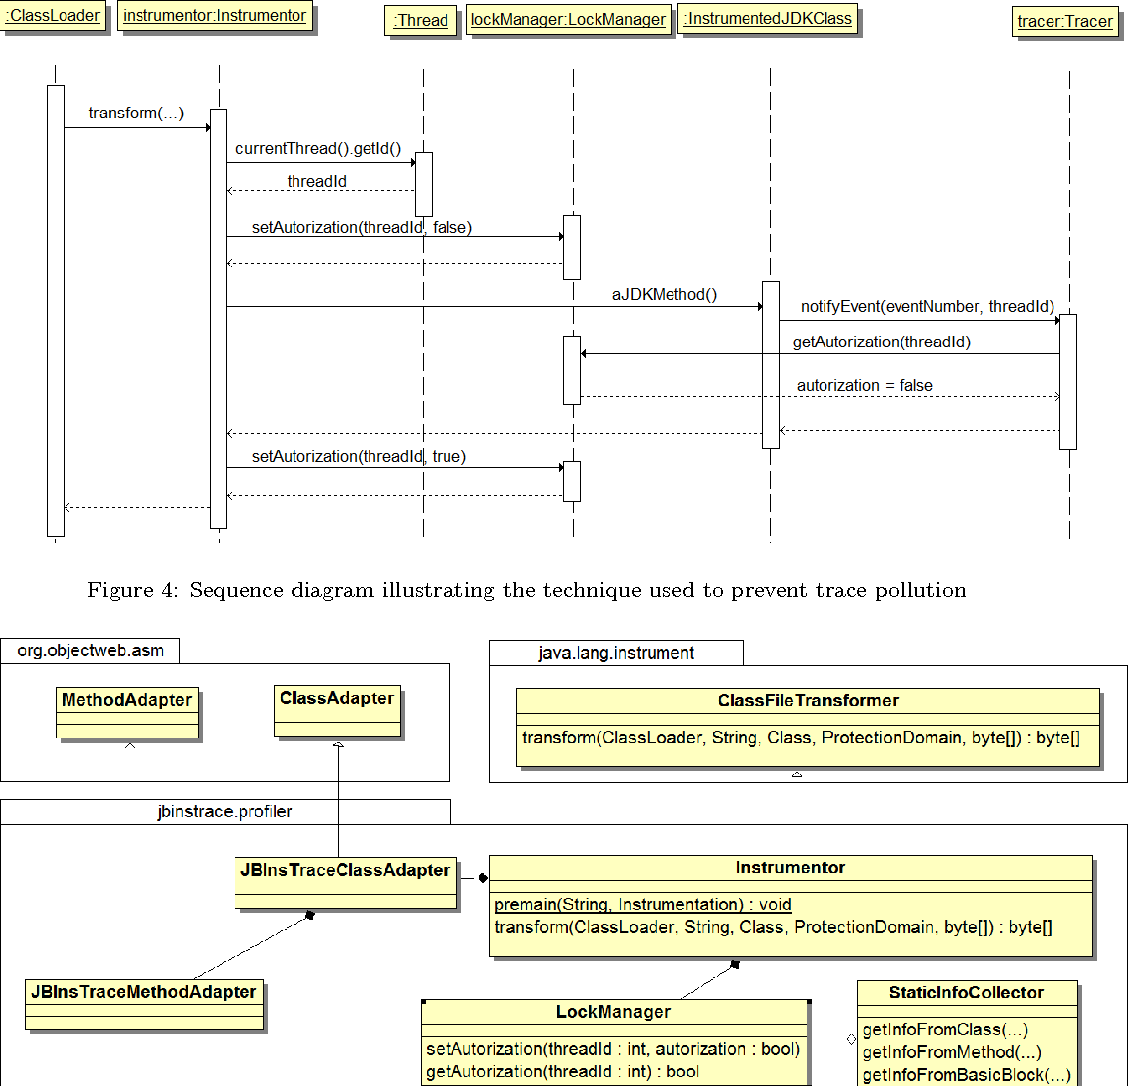 Figure 4: Sequence diagram illustrating the technique used to prevent trace pollution